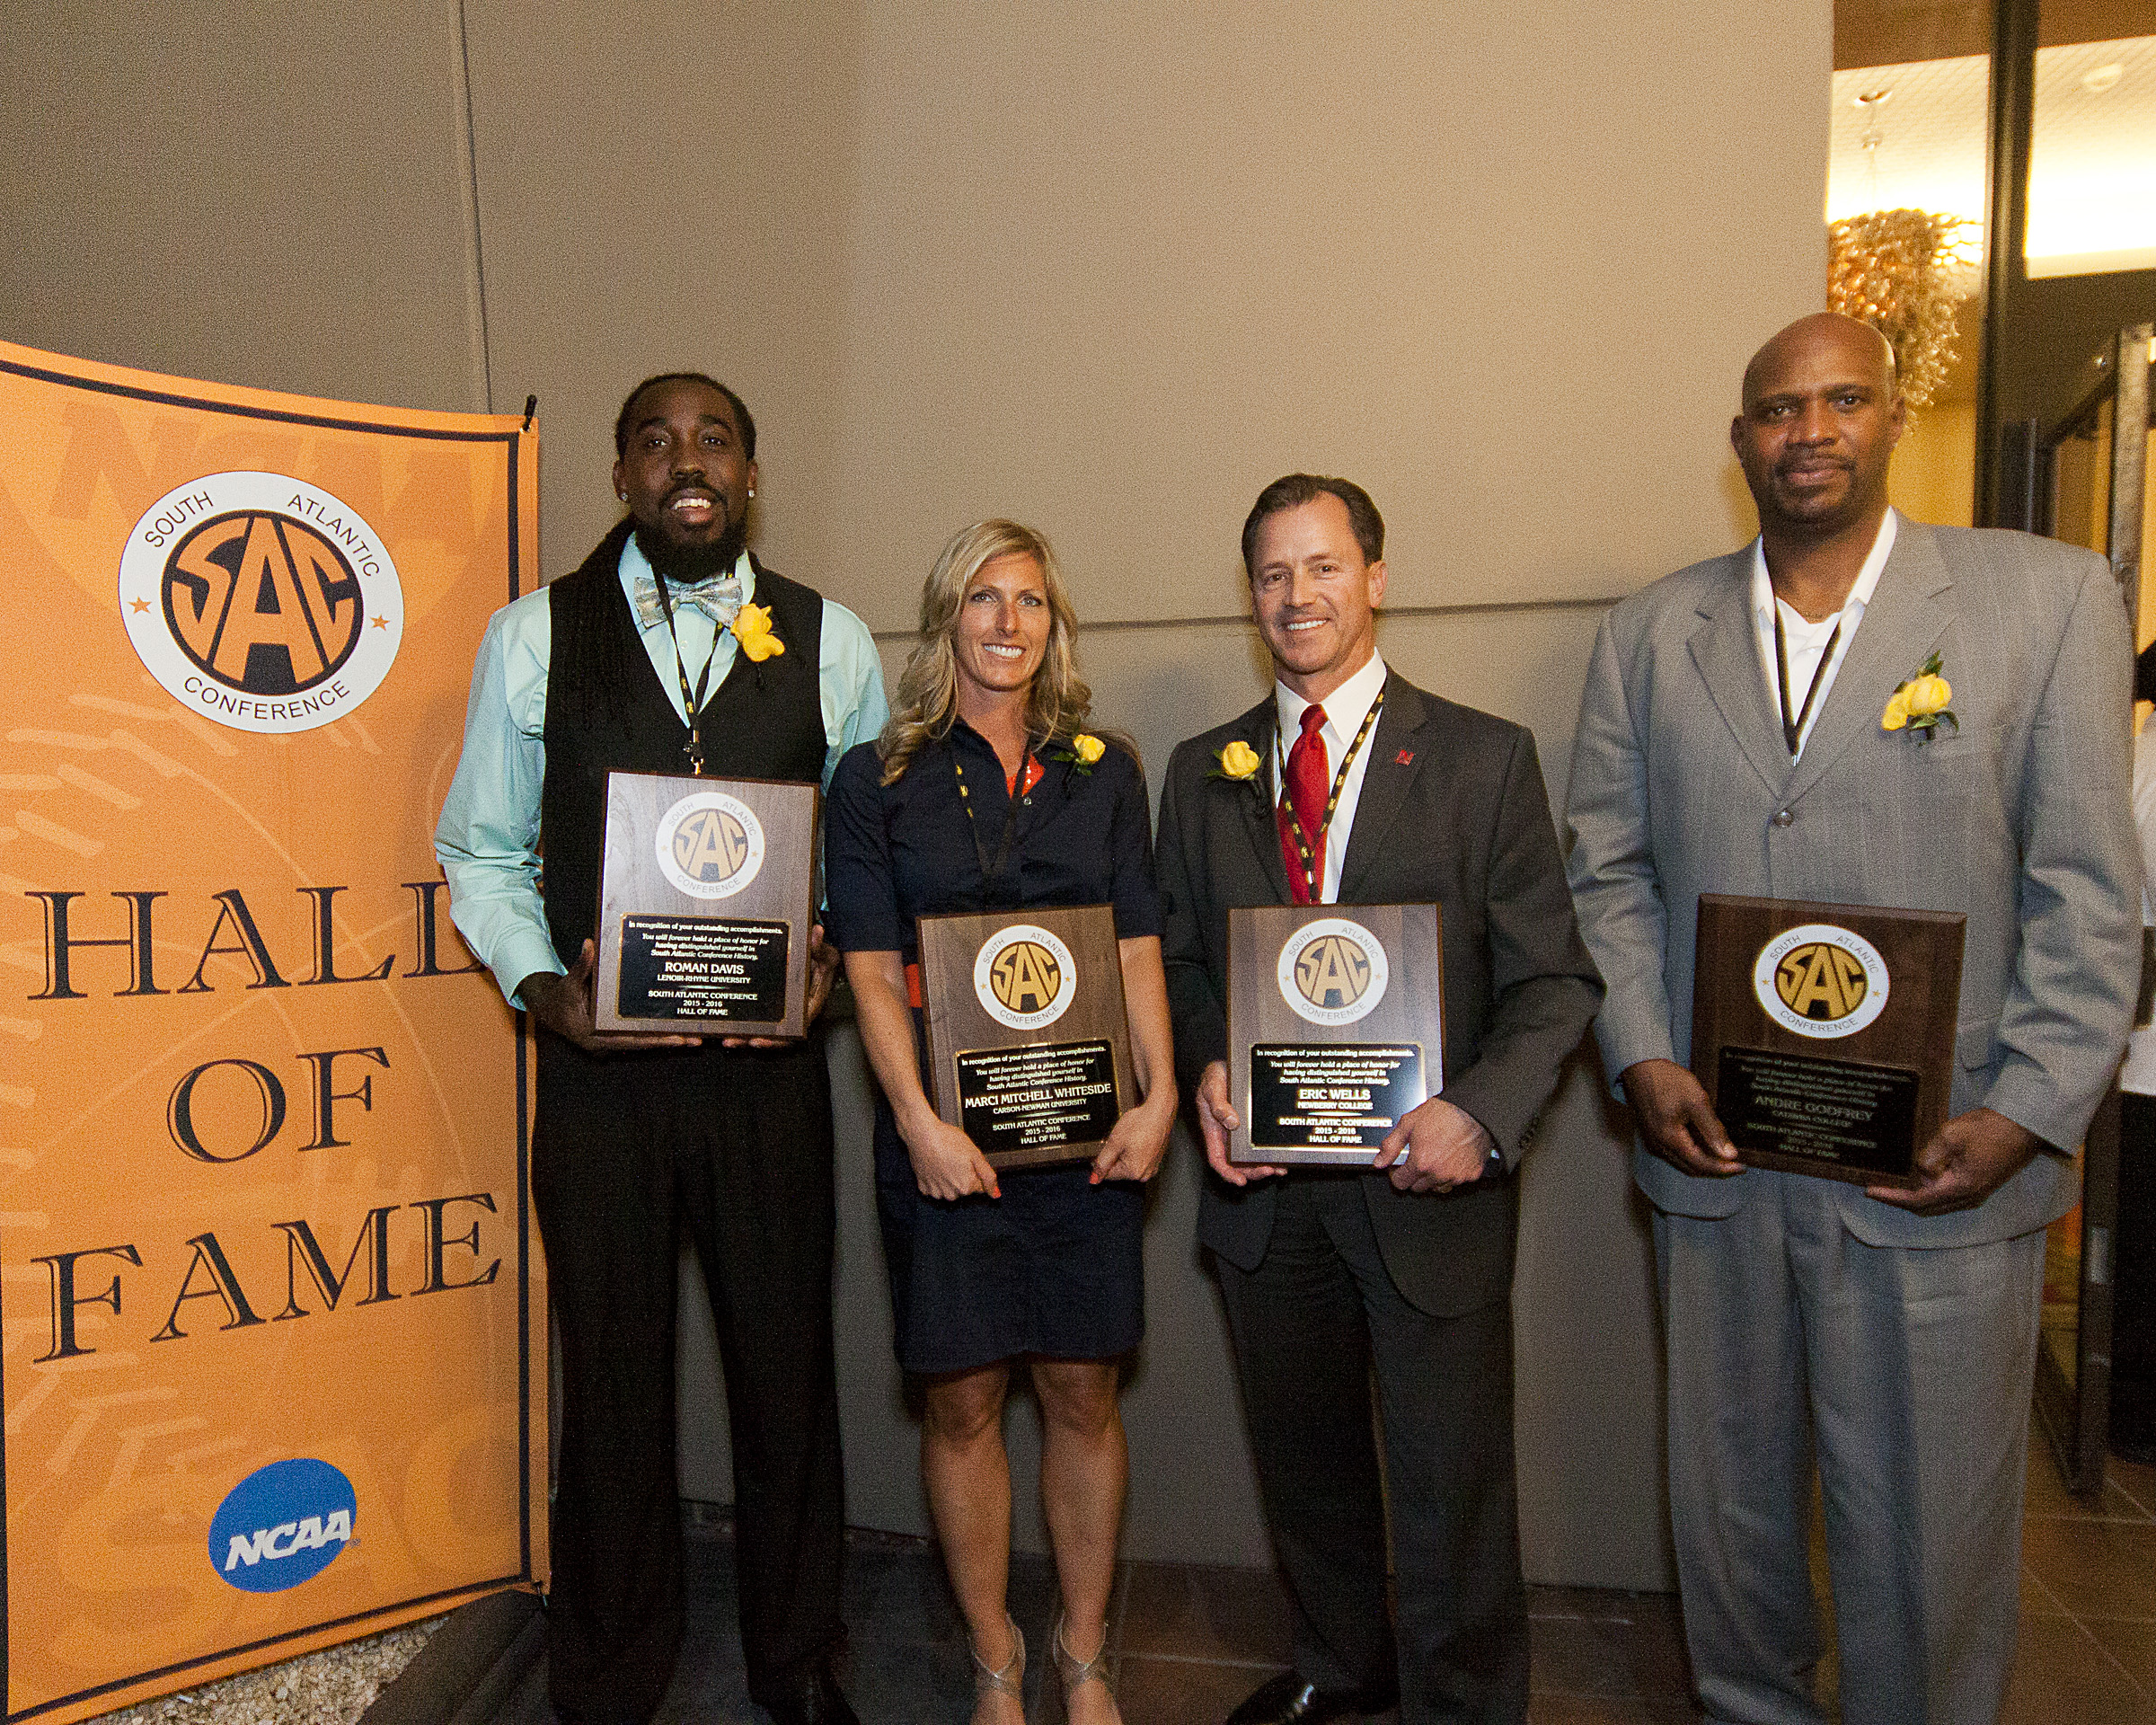 Four people being inducted into Hall of Fame stand next to a banner and hold their plaques